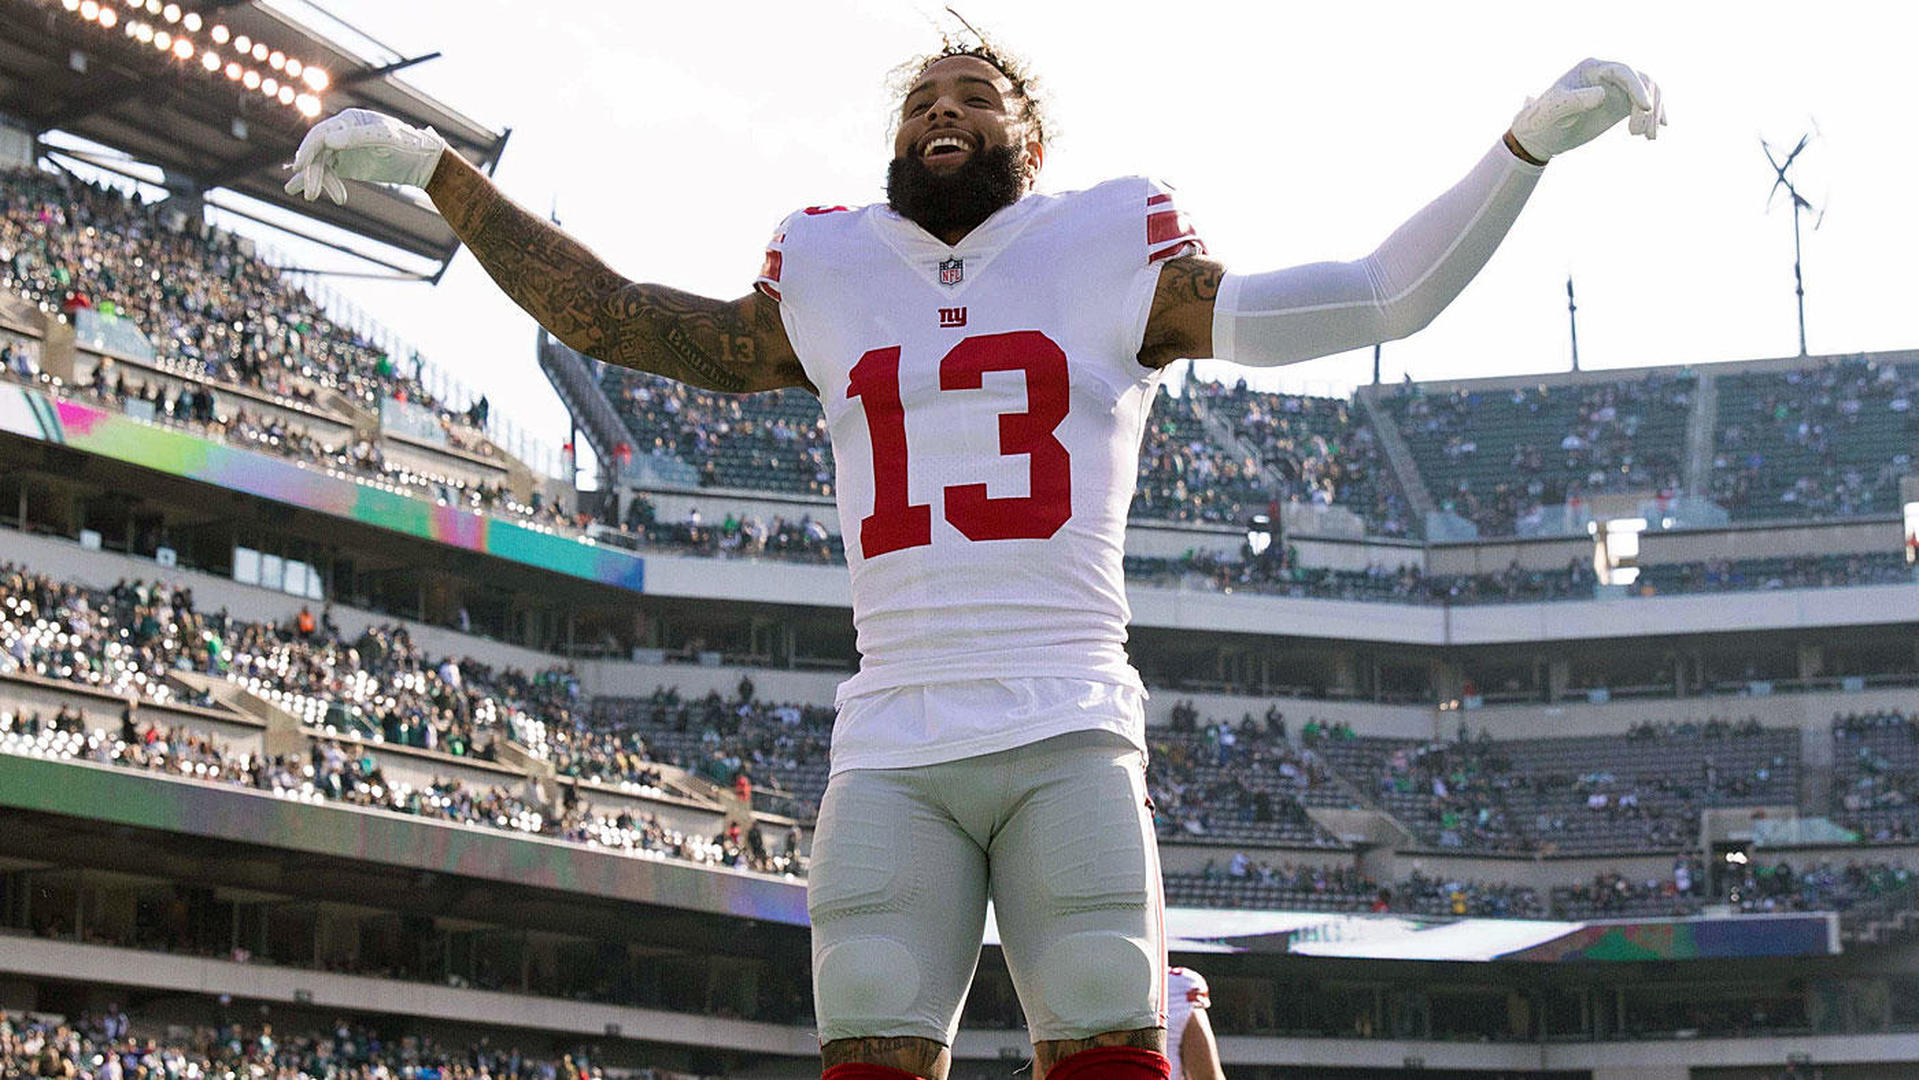 Odell Beckham posts cryptic message on Instagram after Browns trade about re-evaluating some 'things in my life'